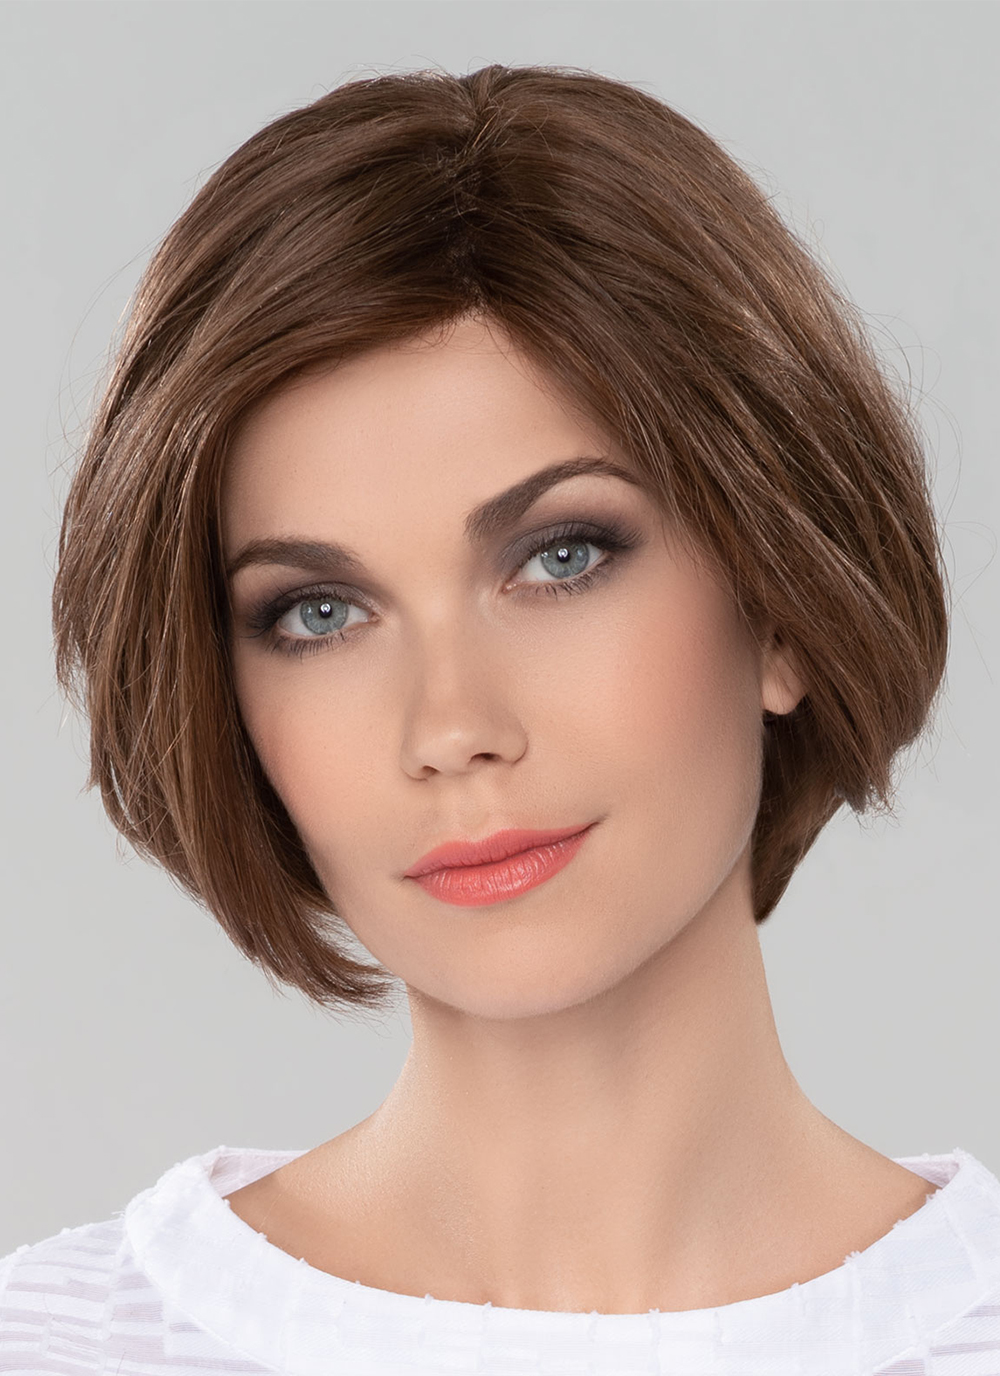 COSMO by ELLEN WILLE in CHOCOLATE MIX   Medium to Dark Base with Light Reddish Brown Highlights